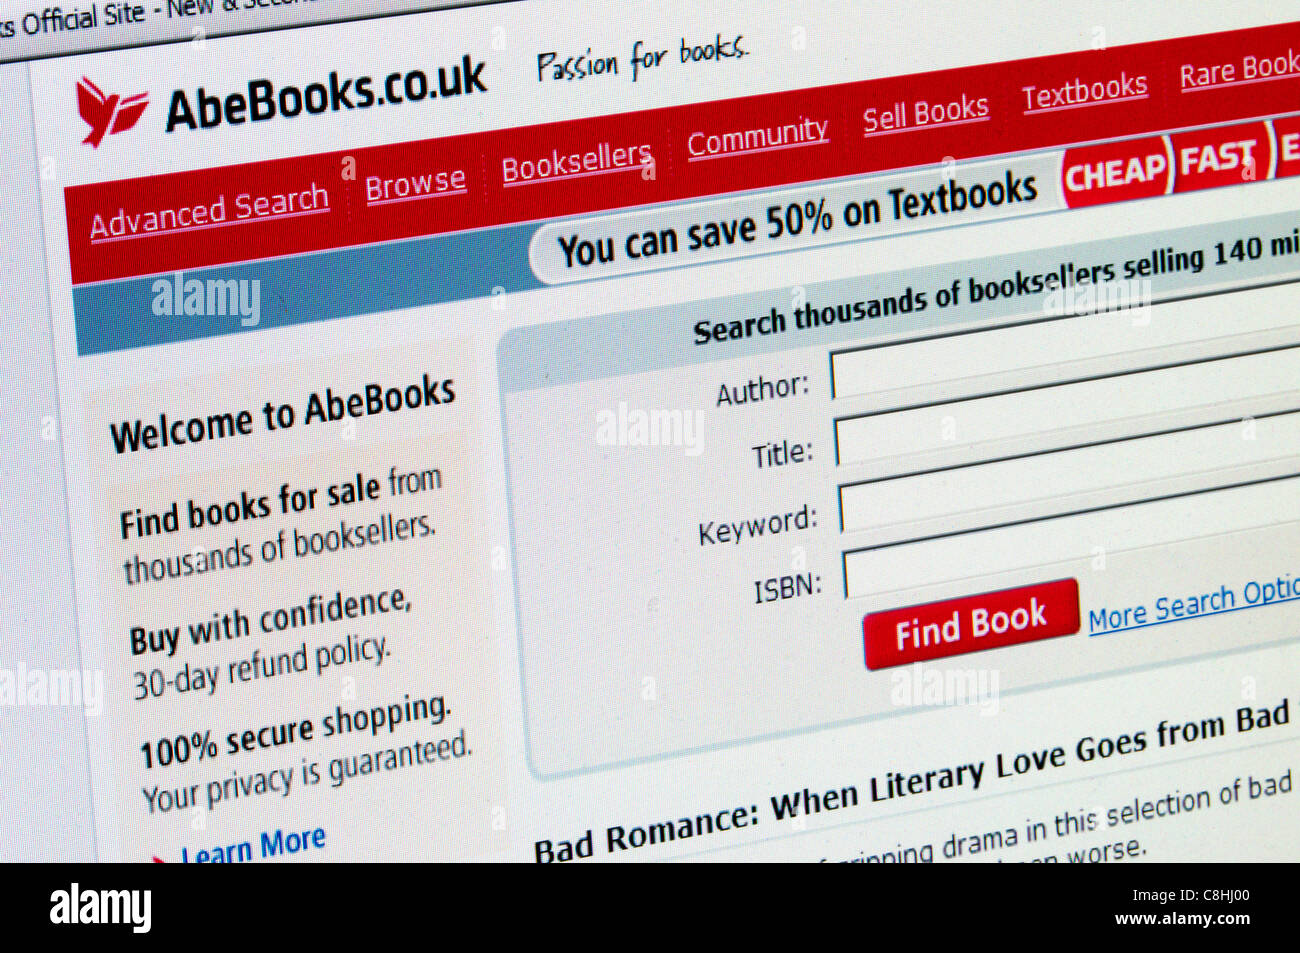 AbeBooks website.  AbeBooks has been owned by Amazon since 2008. - Stock Image